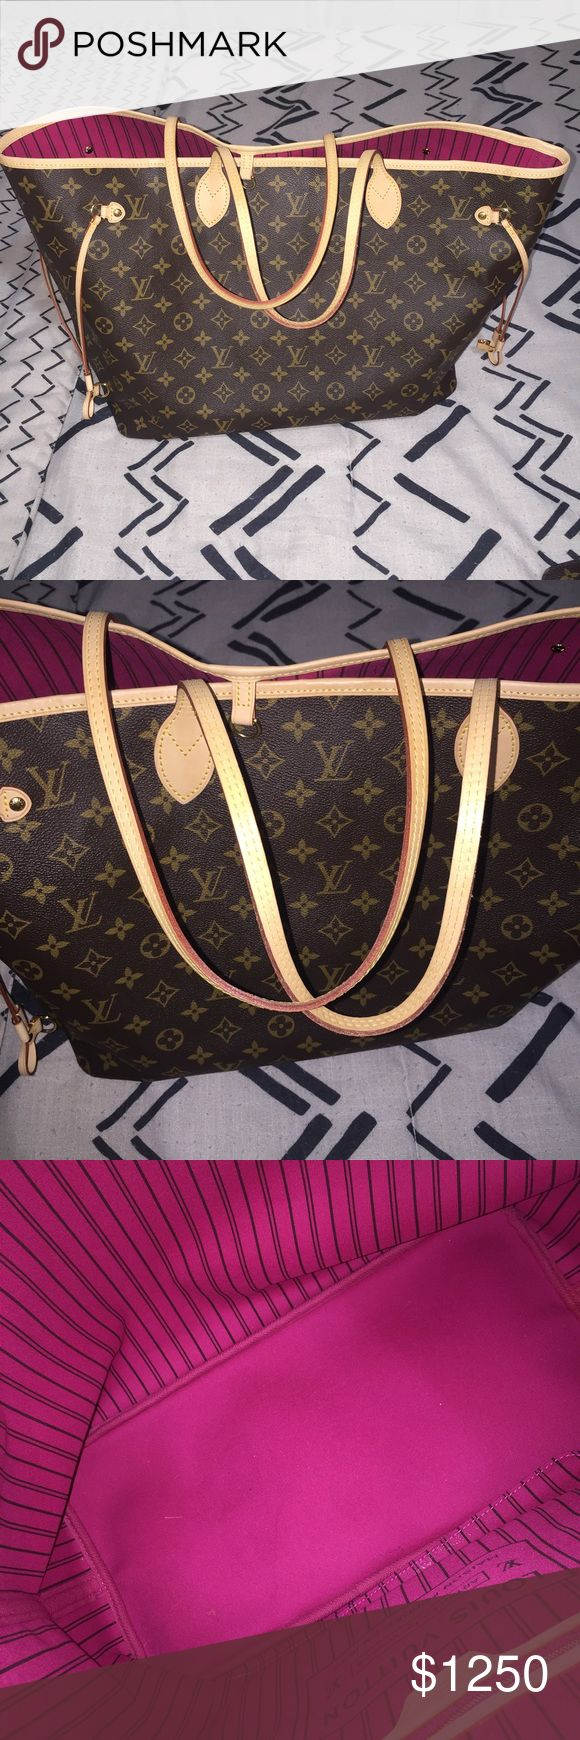 Louis Vuitton neverfull GM In monogram canvas. NO TRADES. In excellent condition, no rips, no tears. Comes with box, dust bag, receipt. Louis Vuitton Bags Totes